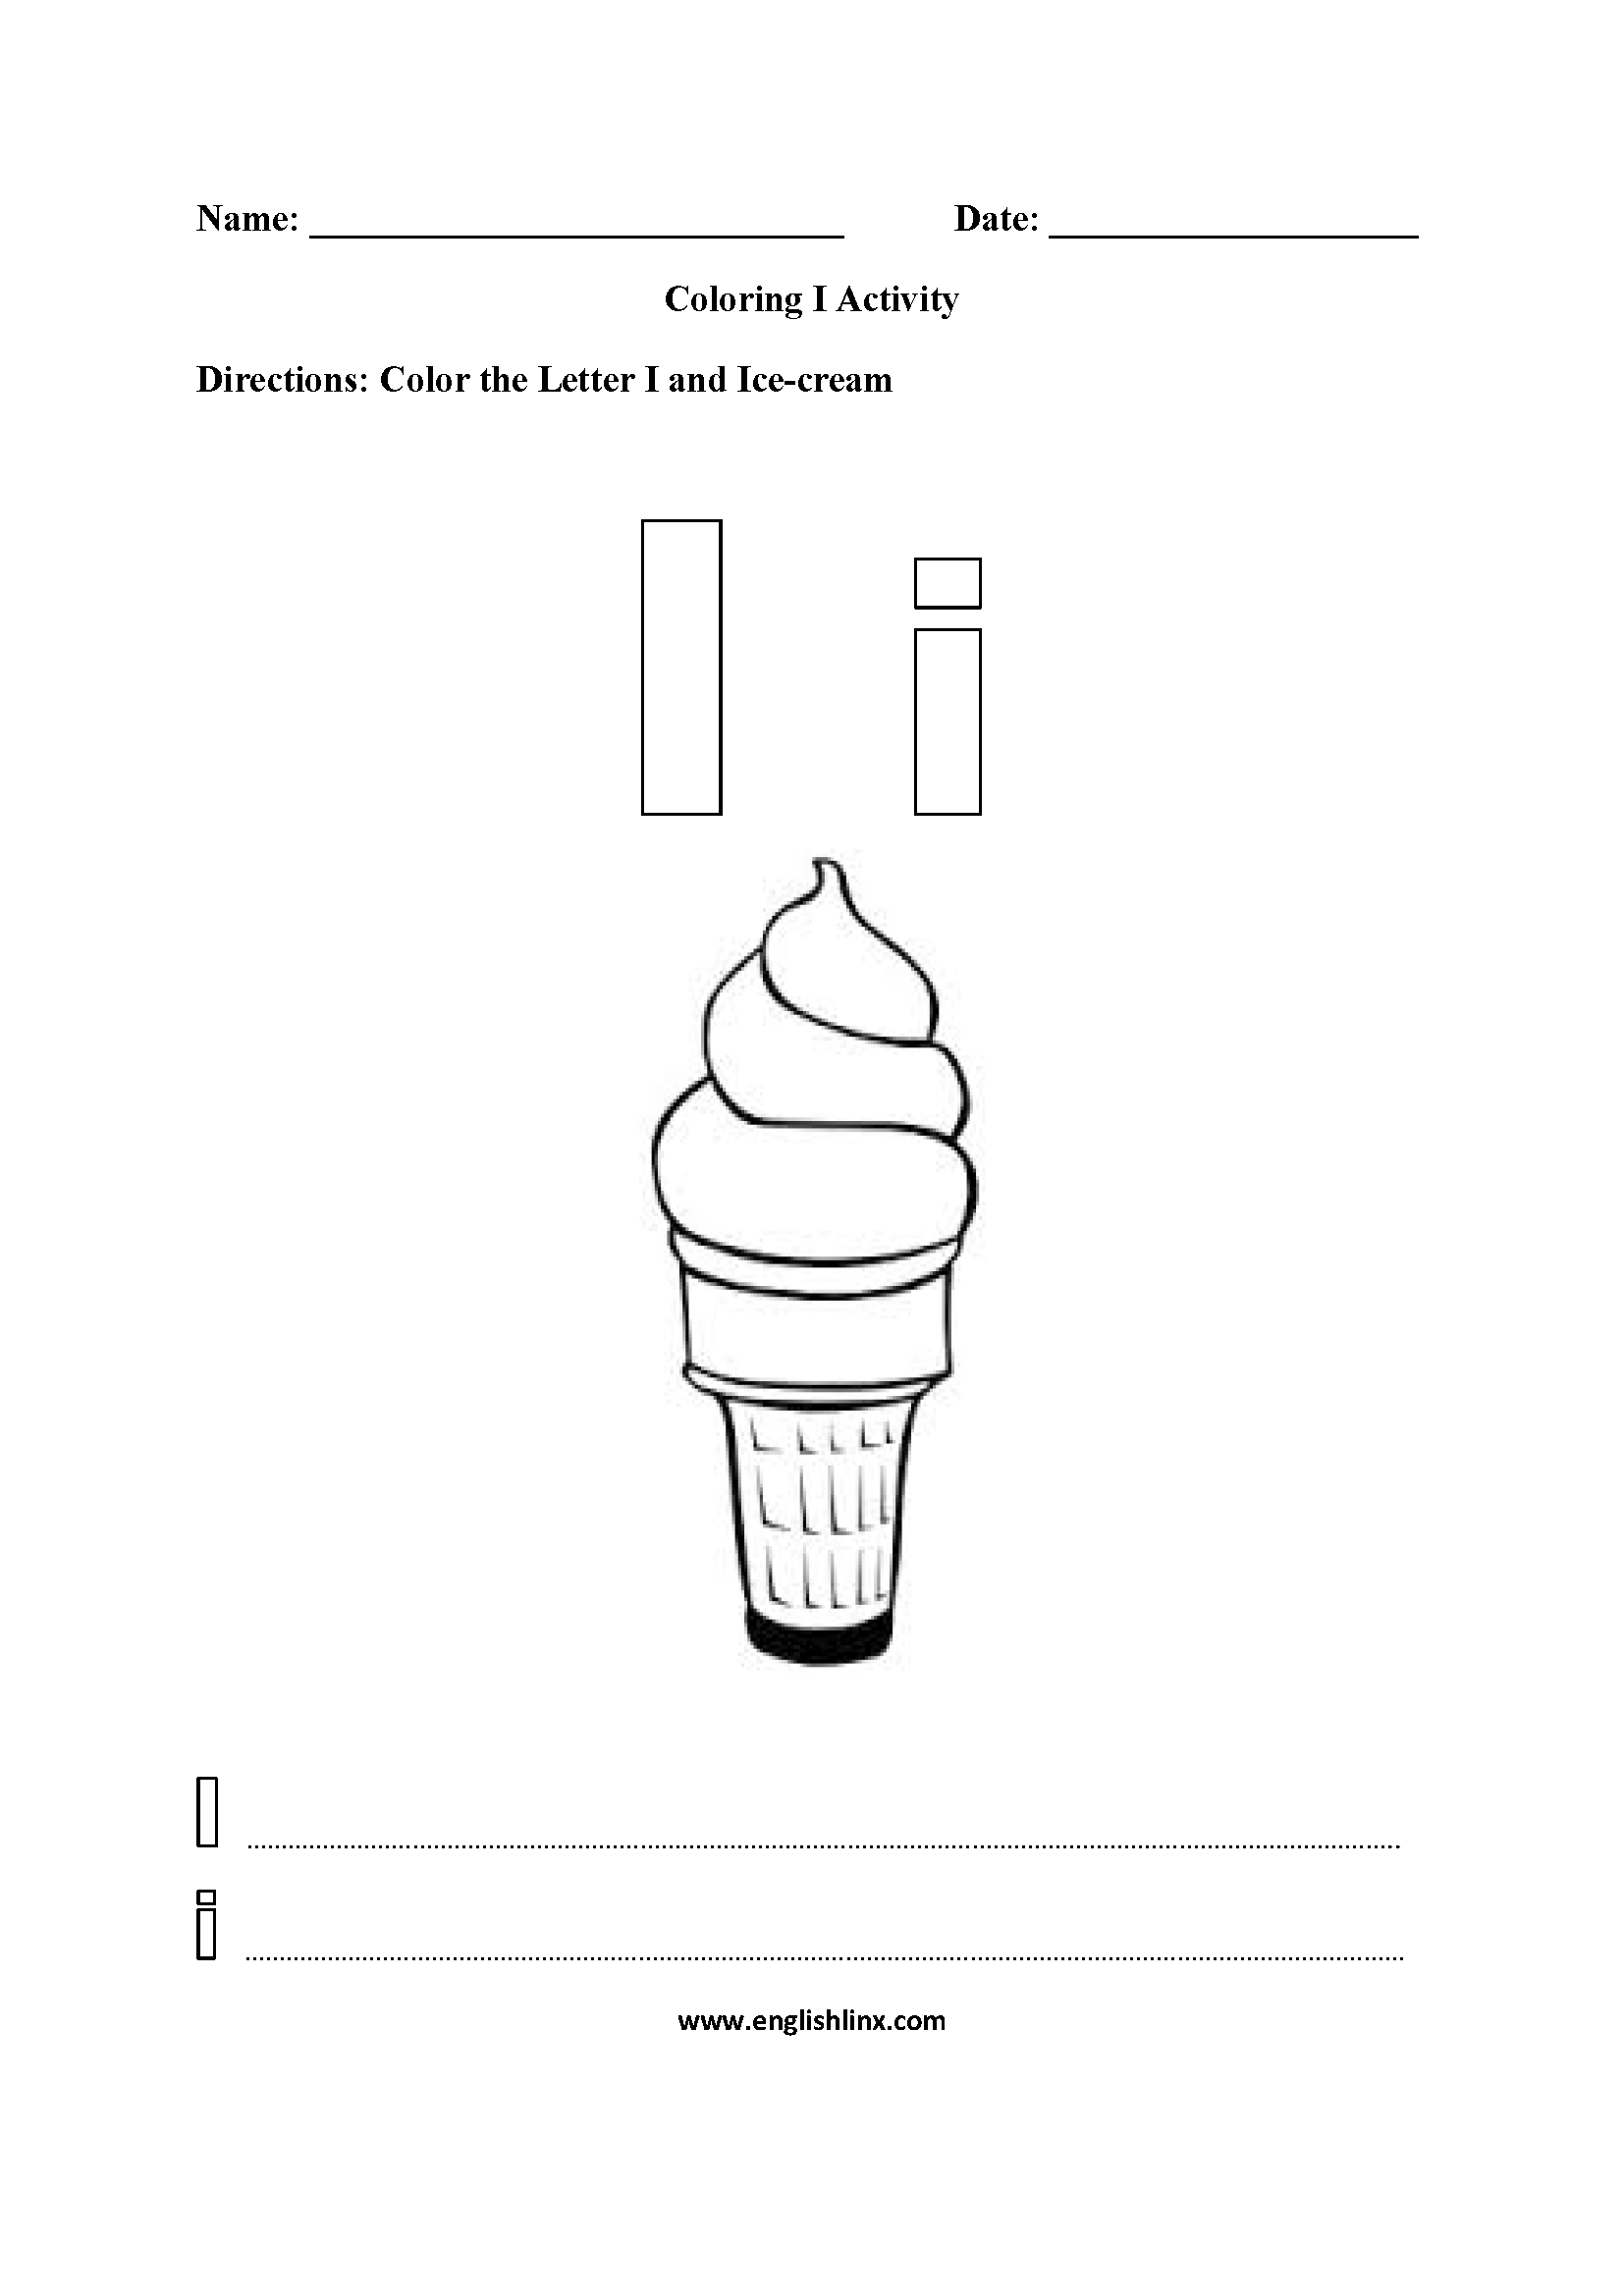 Coloring I Worksheet